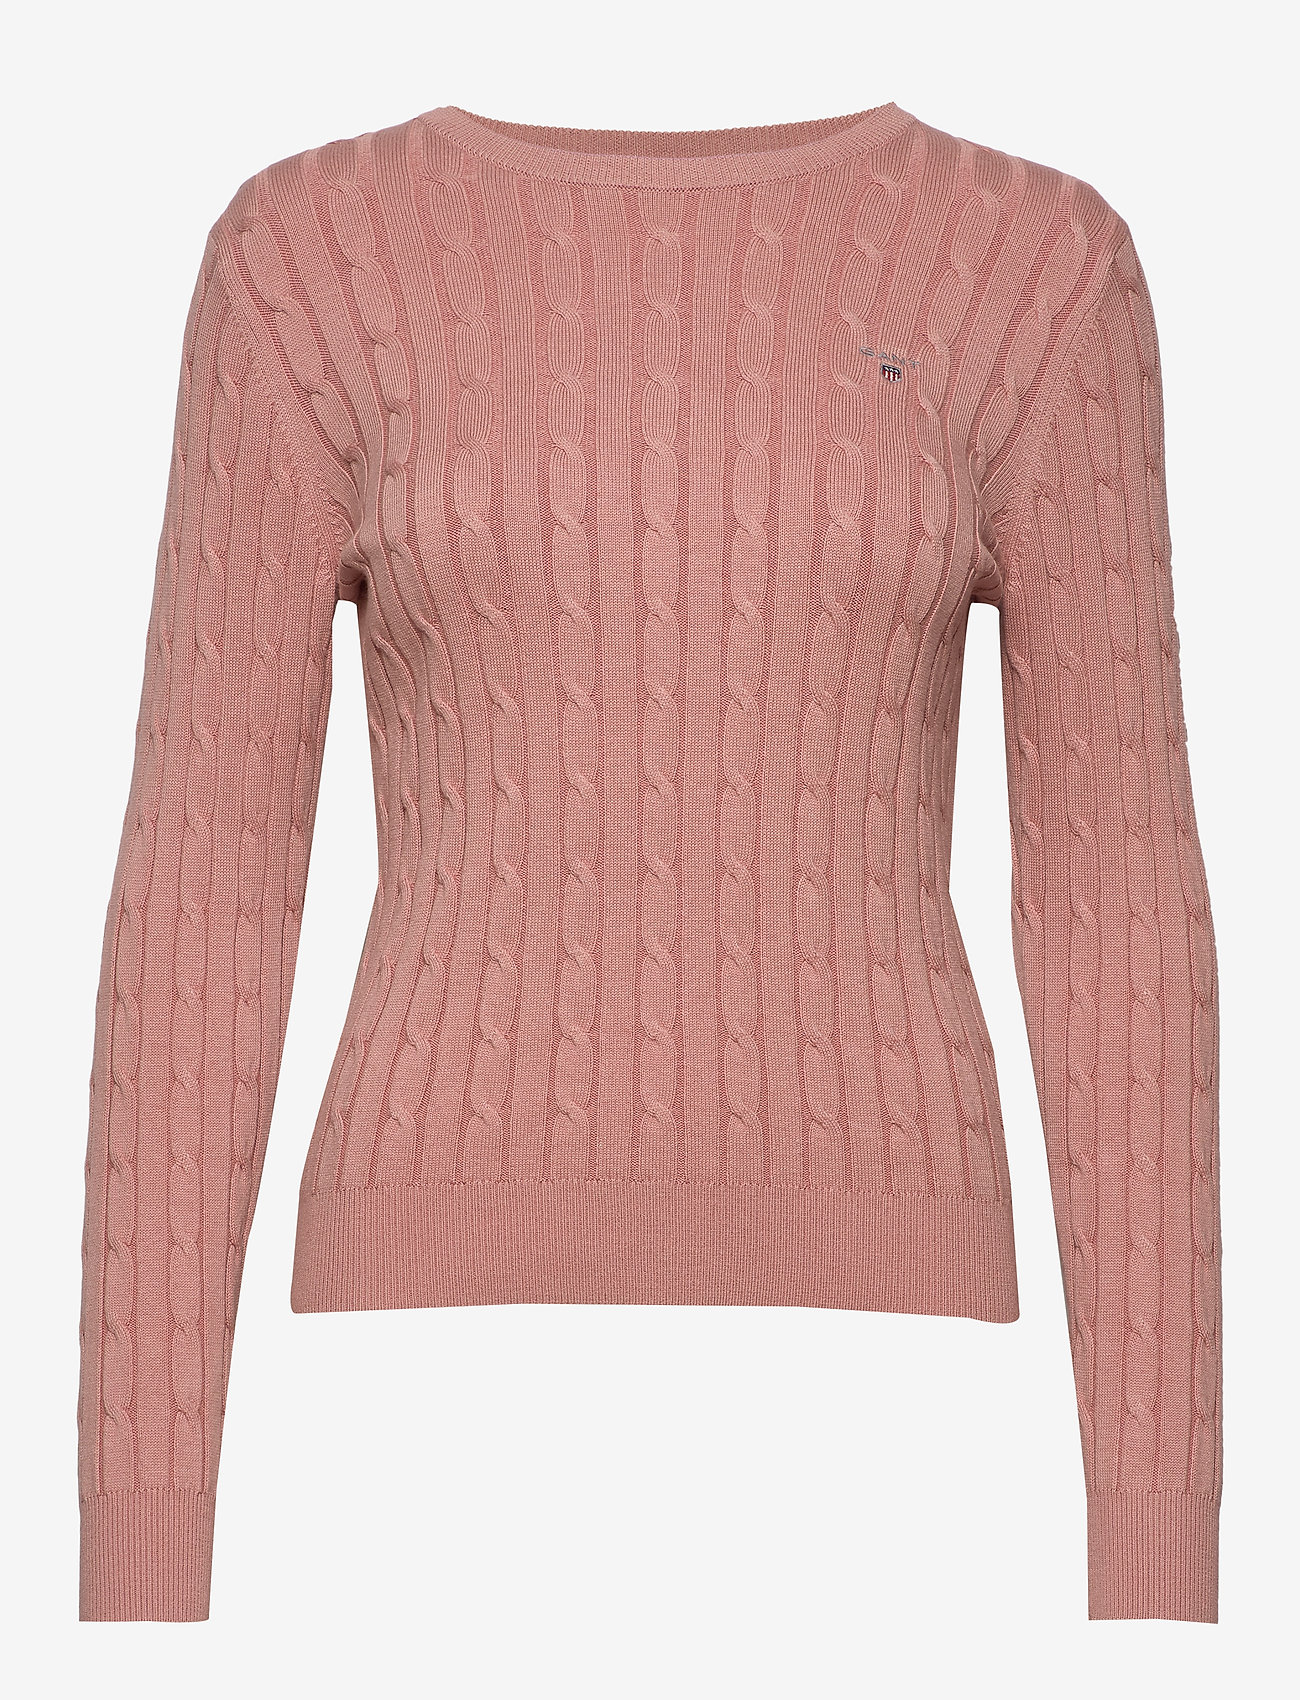 Gant - STRETCH COTTON CABLE C-NECK - tröjor - ash rose